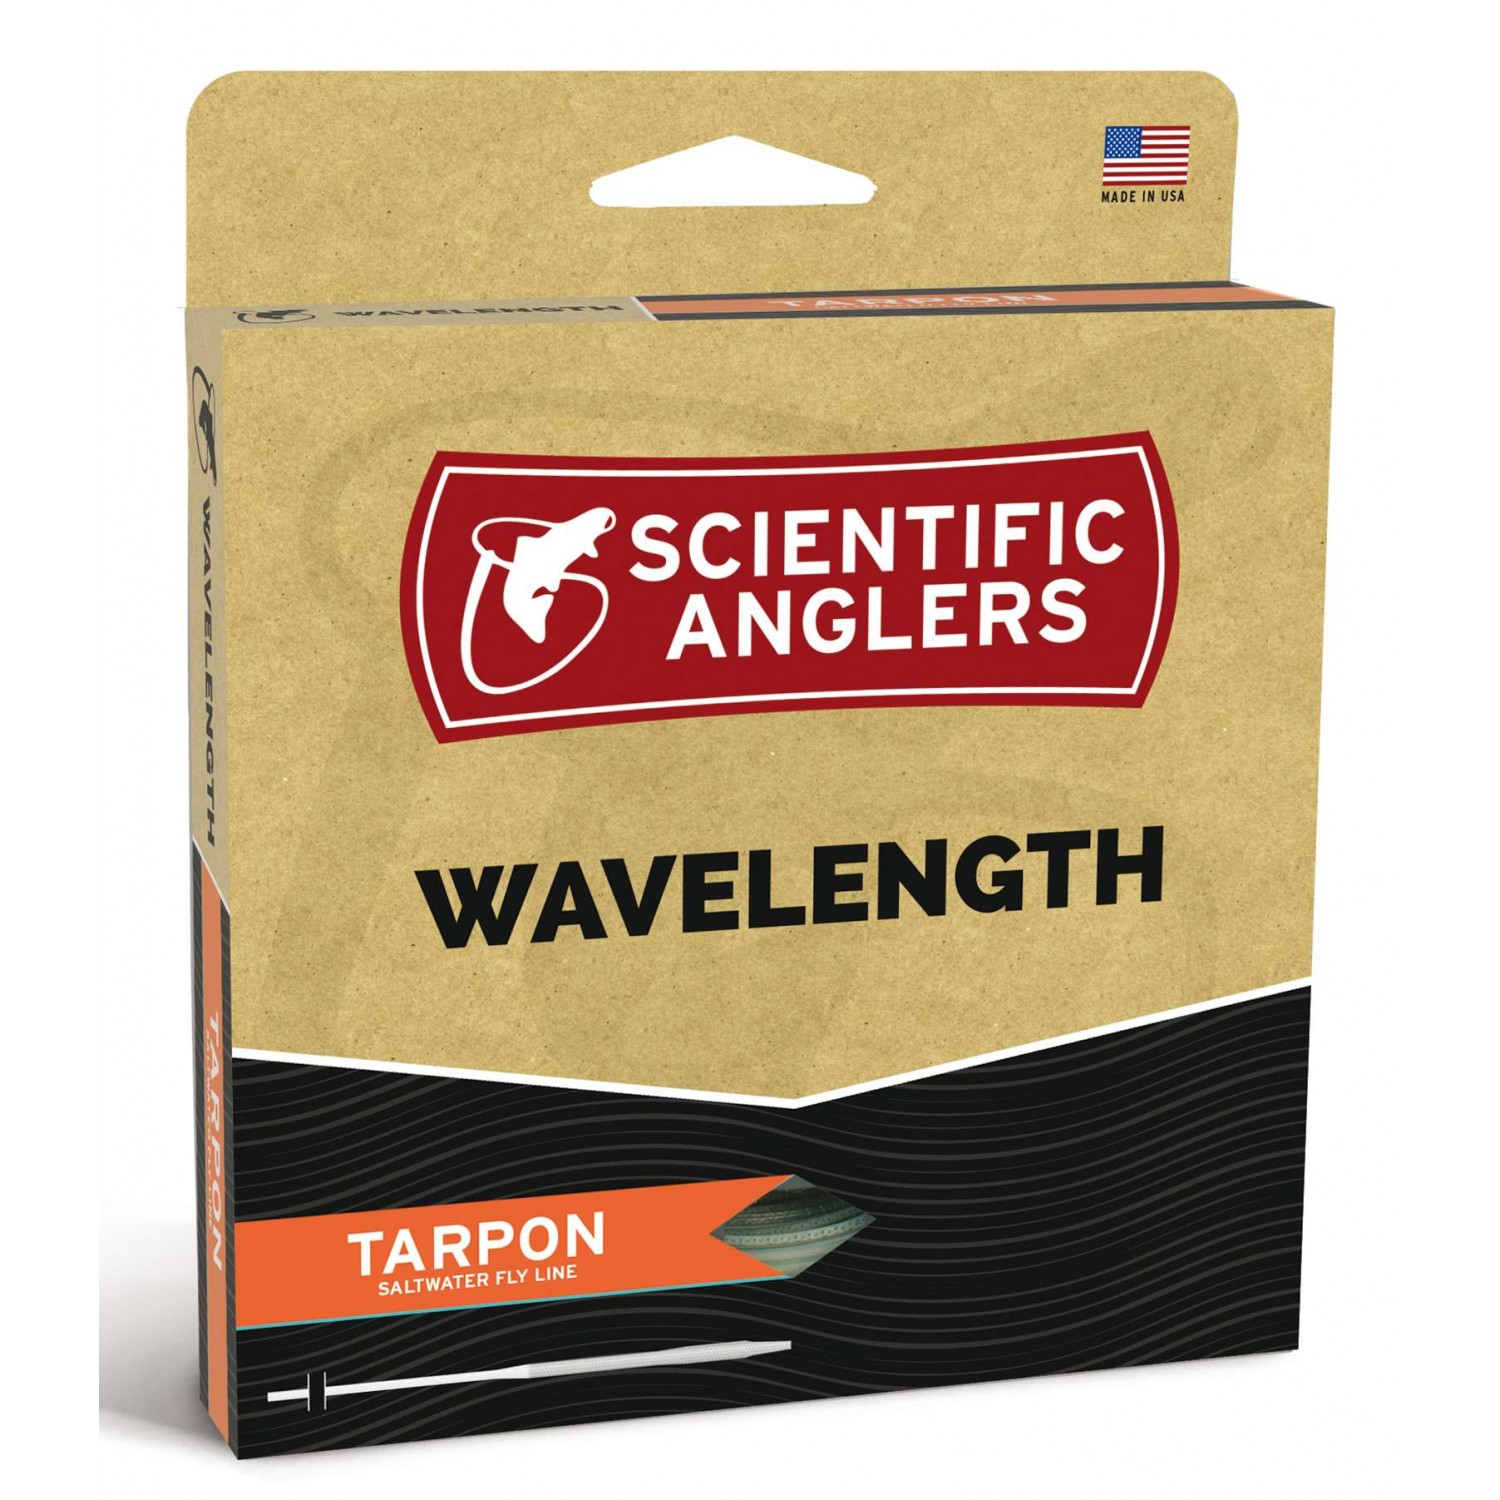 Scientific Anglers - Wavelenght Tarpon Sunset/Sand WF